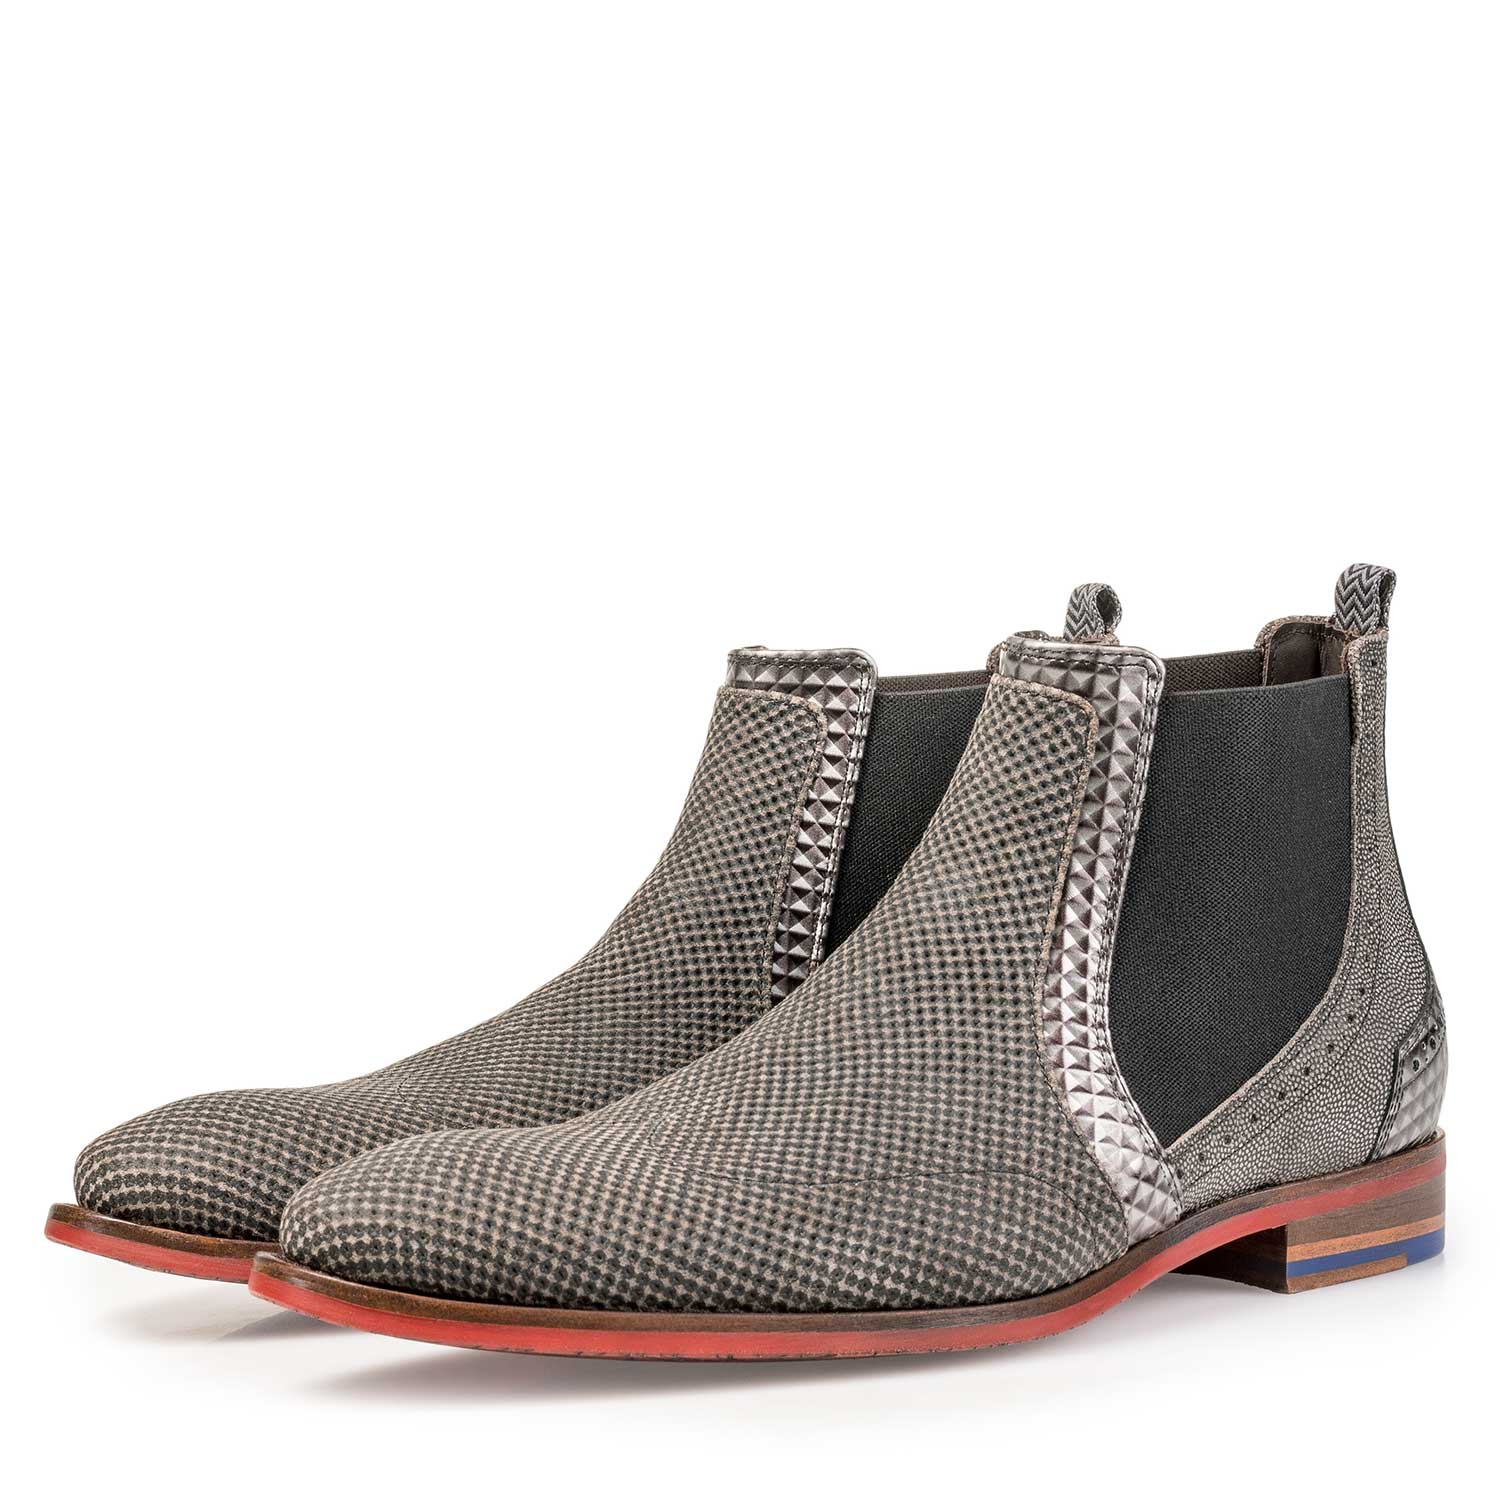 10455/07 - Taupe-coloured suede leather Chelsea boot with a mini print